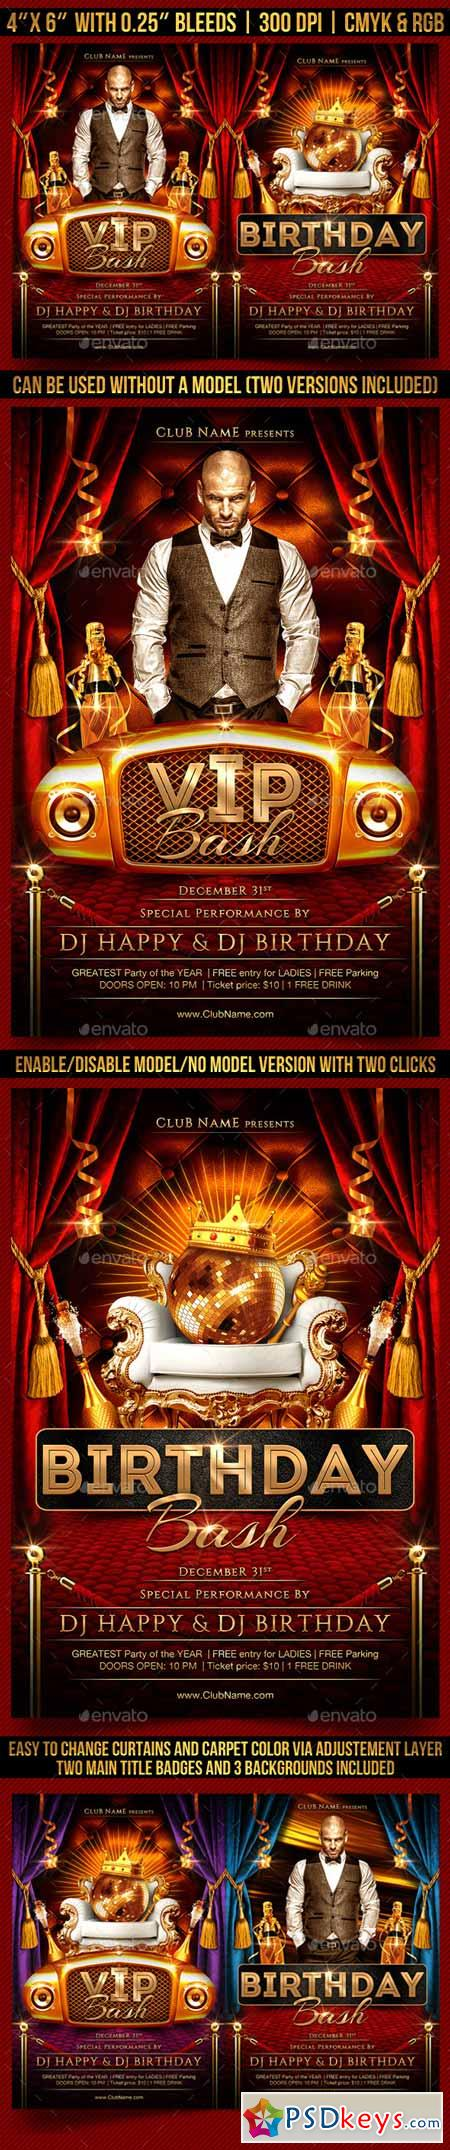 VIP Bash Flyer Template 13193302